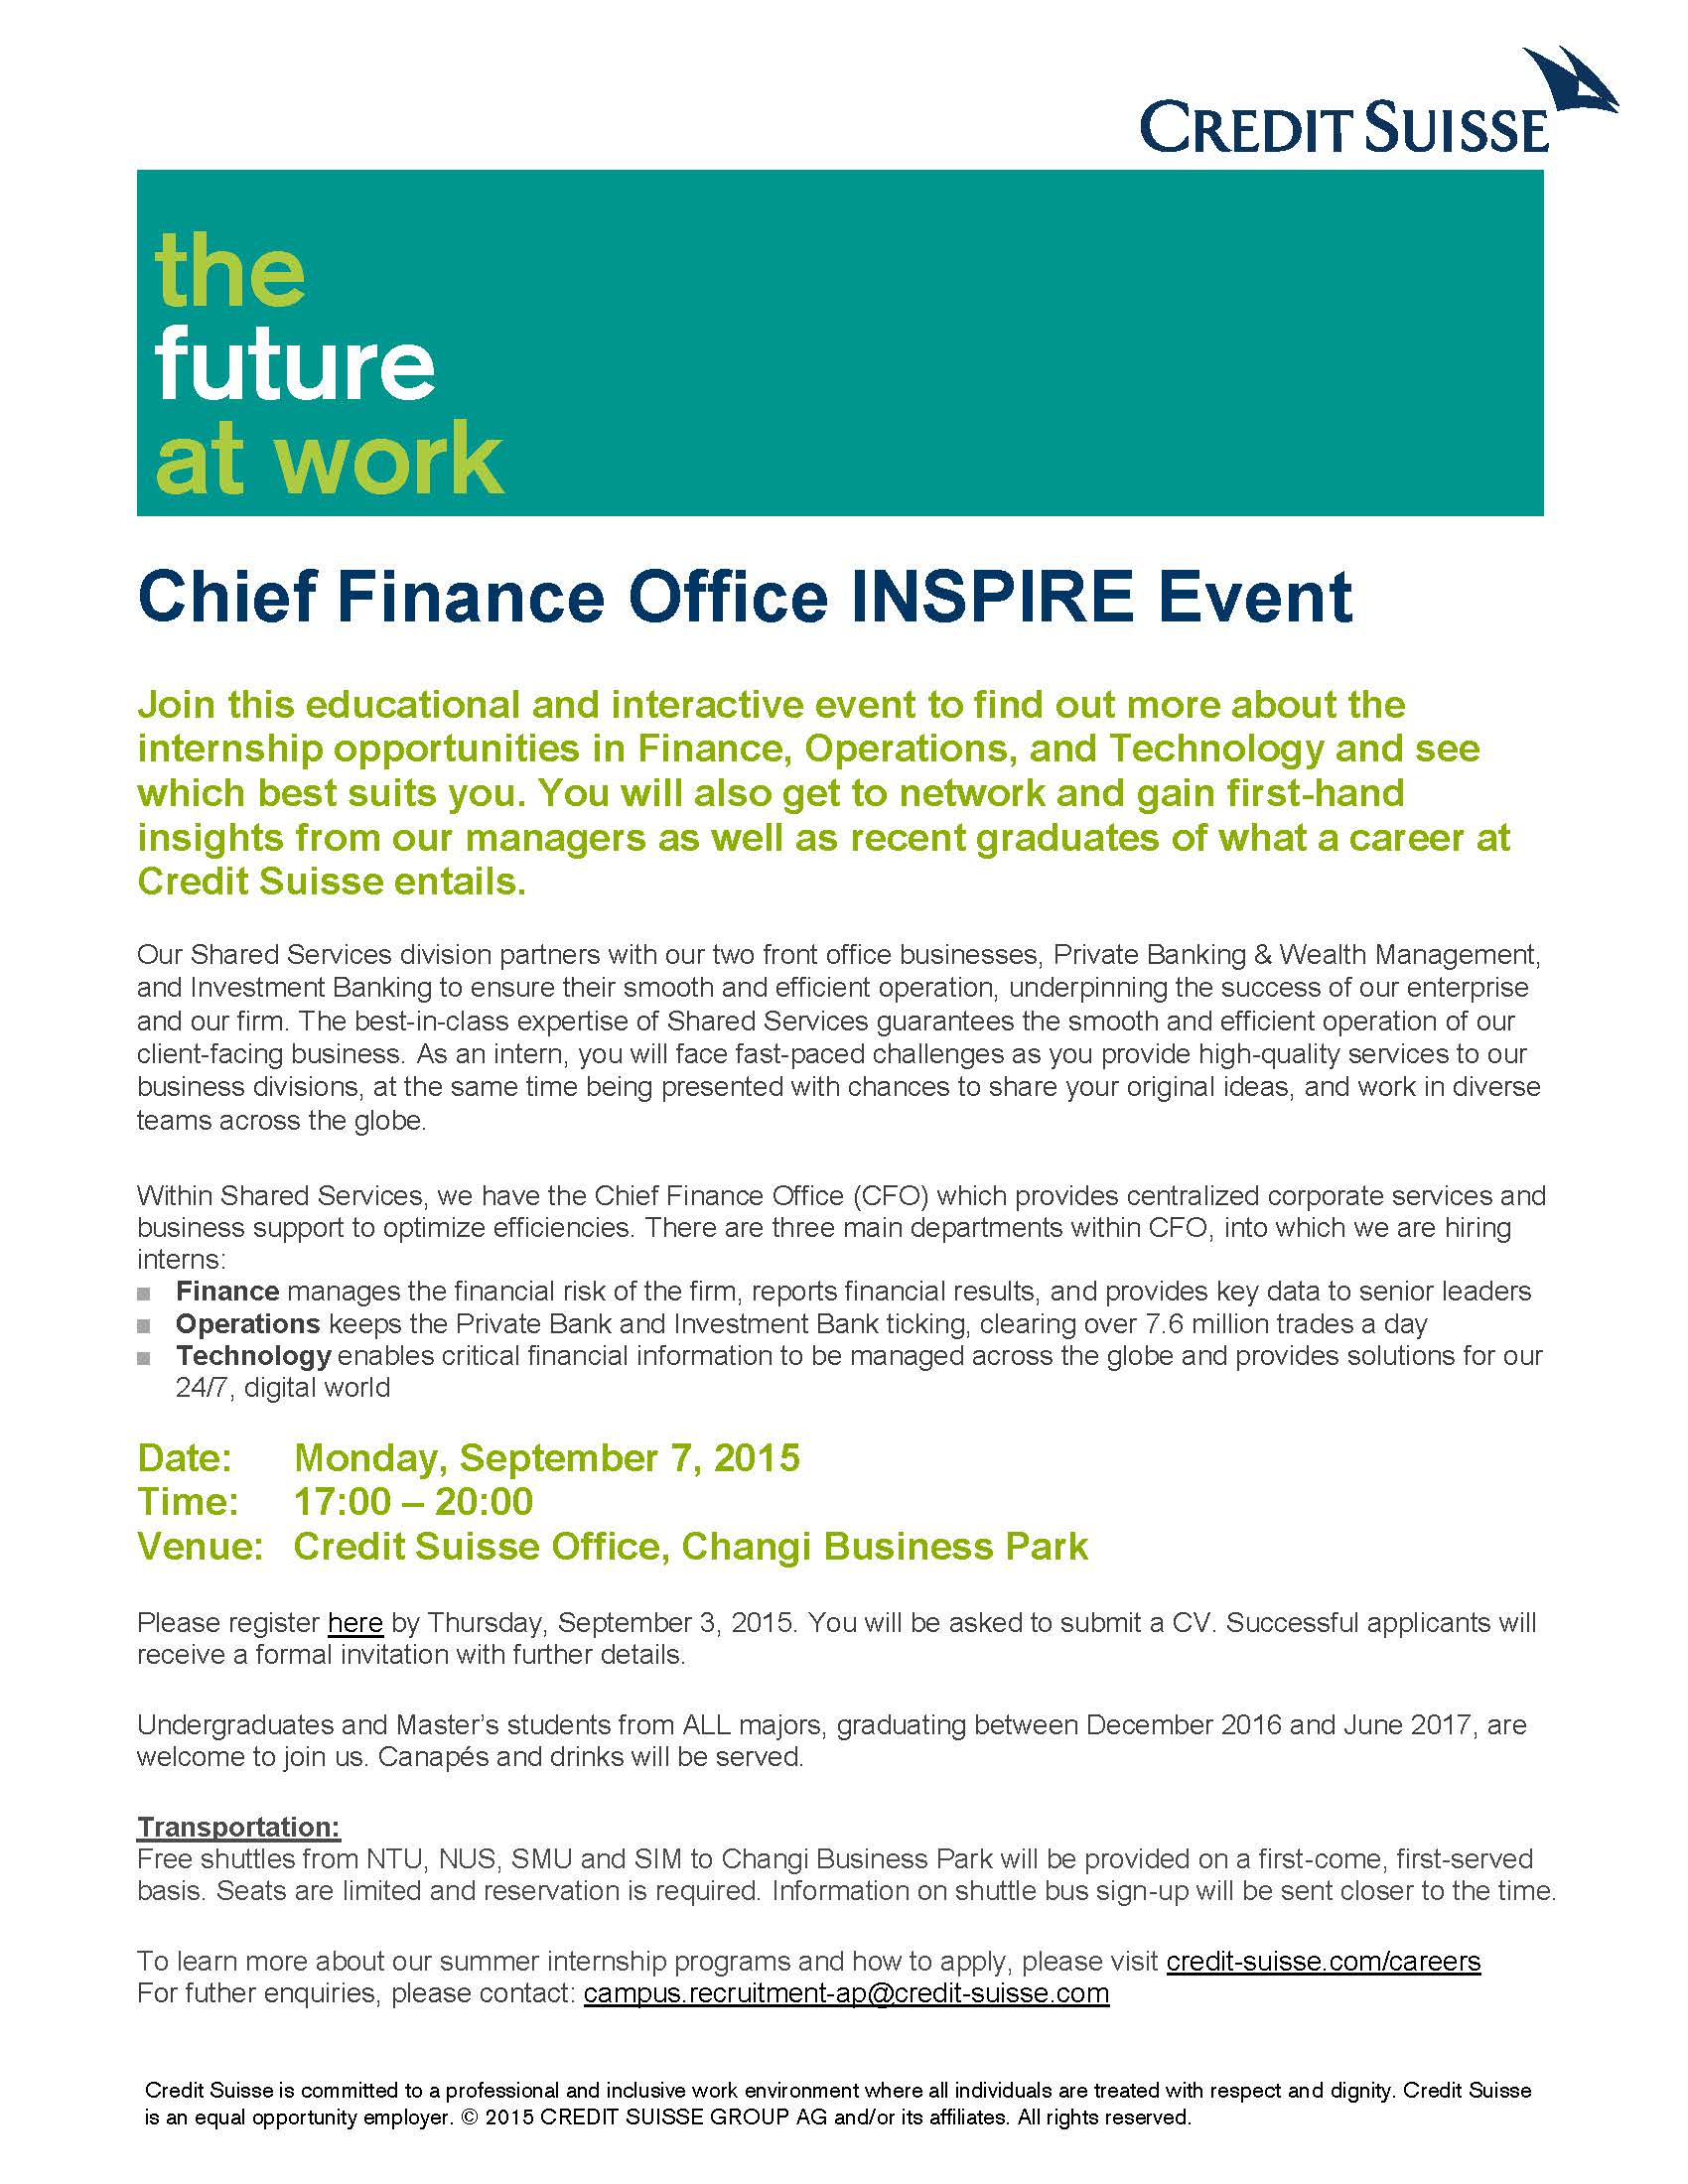 SIGN UP NOW Credit Suisse Chief Finance Office INSPIRE Event -  September 7 2015